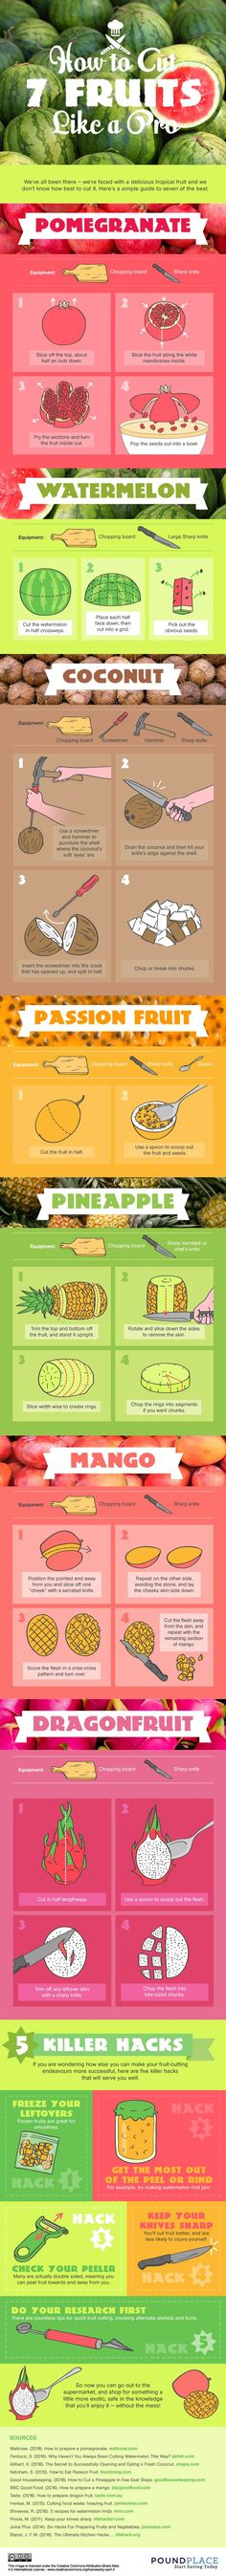 Learn how to cut these 7 fruits like a pro with this guide!